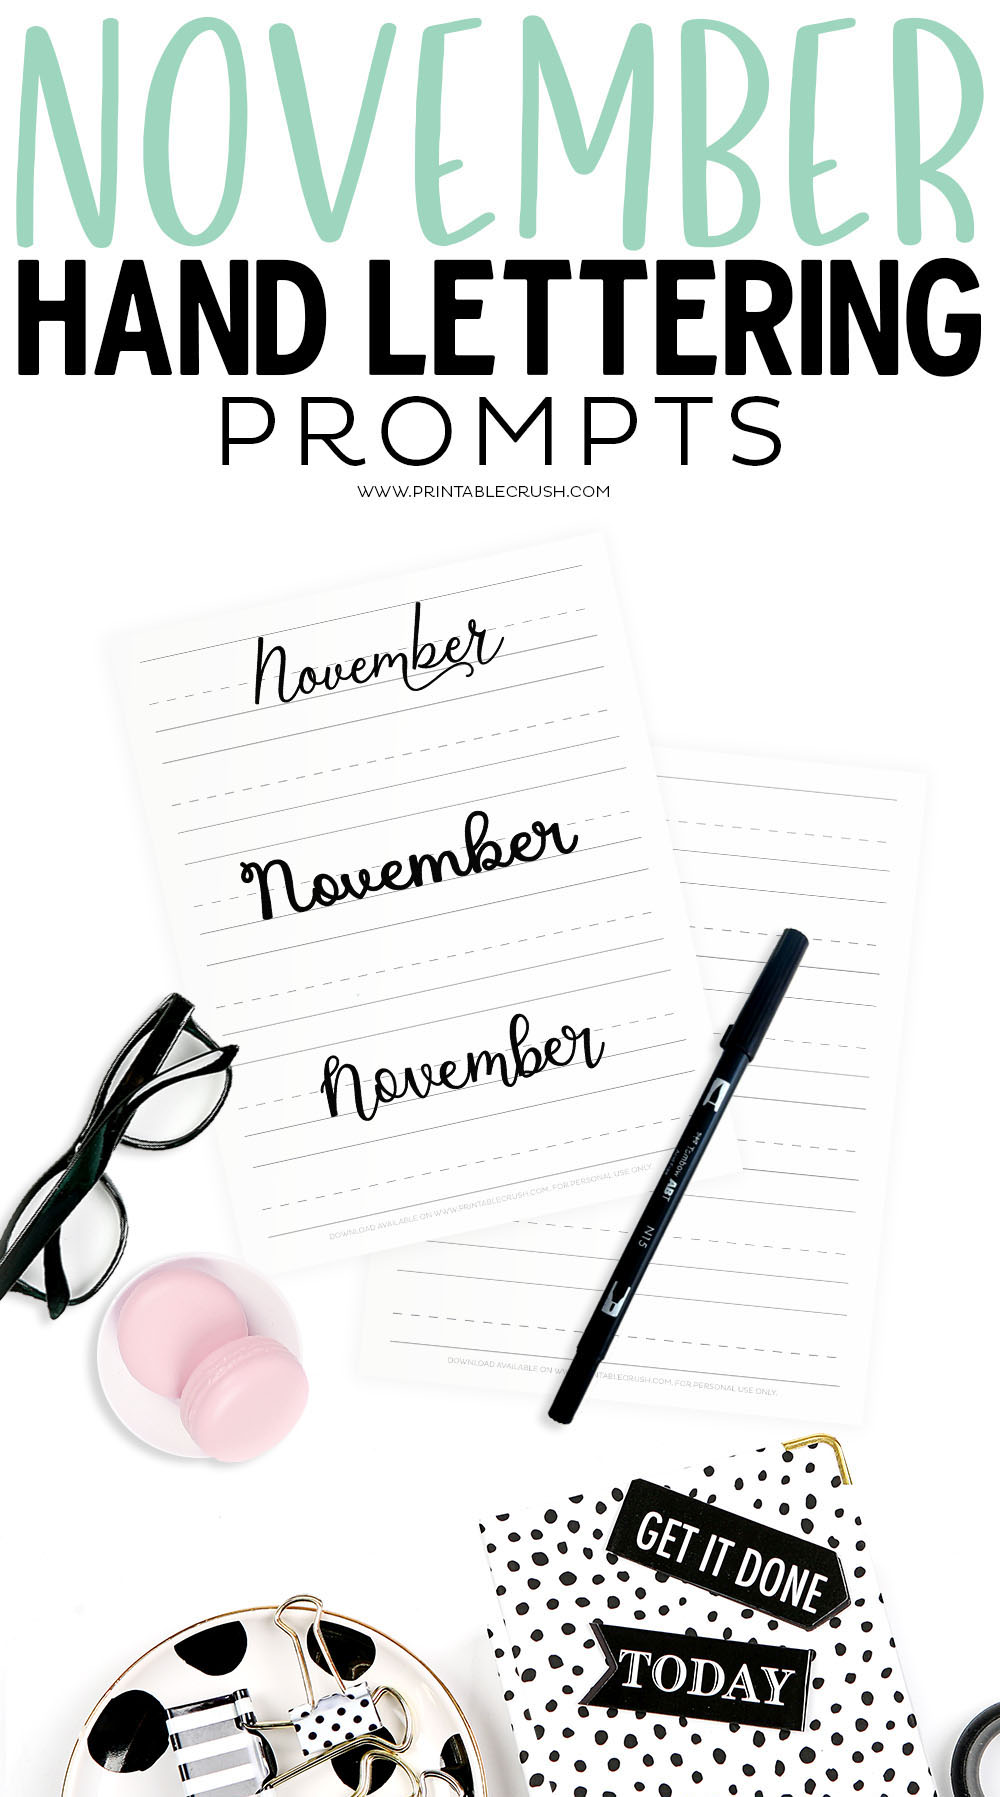 Get 30 FREE November Prompts for Hand Lettering!